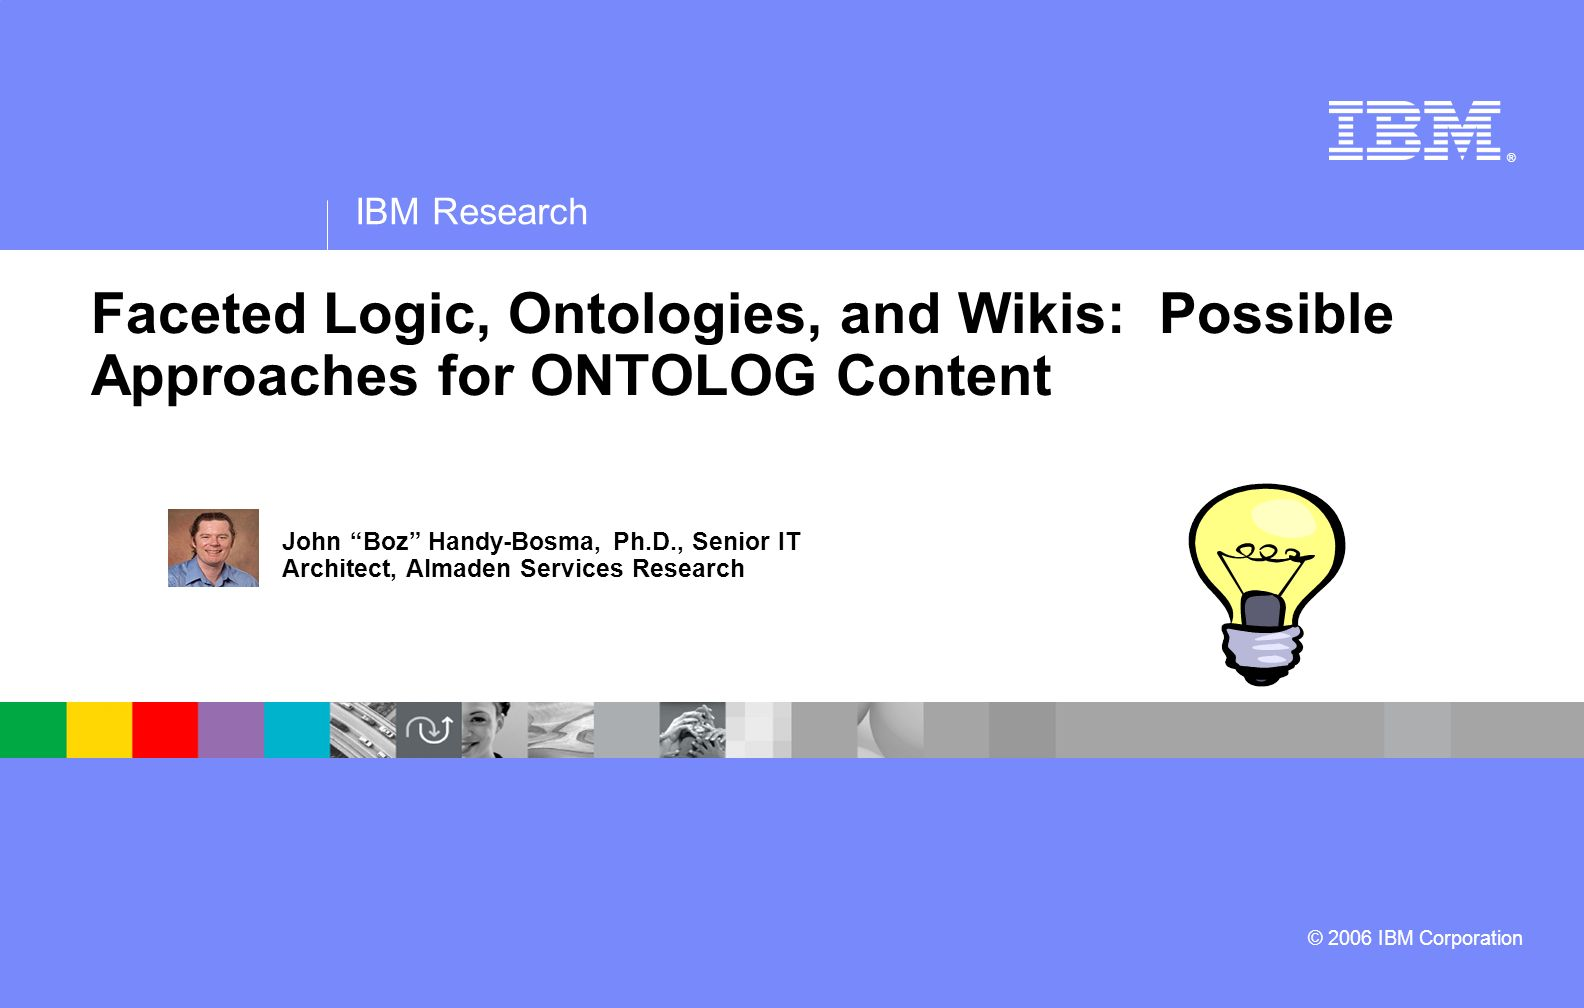 ® IBM Research © 2006 IBM Corporation Faceted Logic, Ontologies, and Wikis: Possible Approaches for ONTOLOG Content John Boz Handy-Bosma, Ph.D., Senior IT Architect, Almaden Services Research